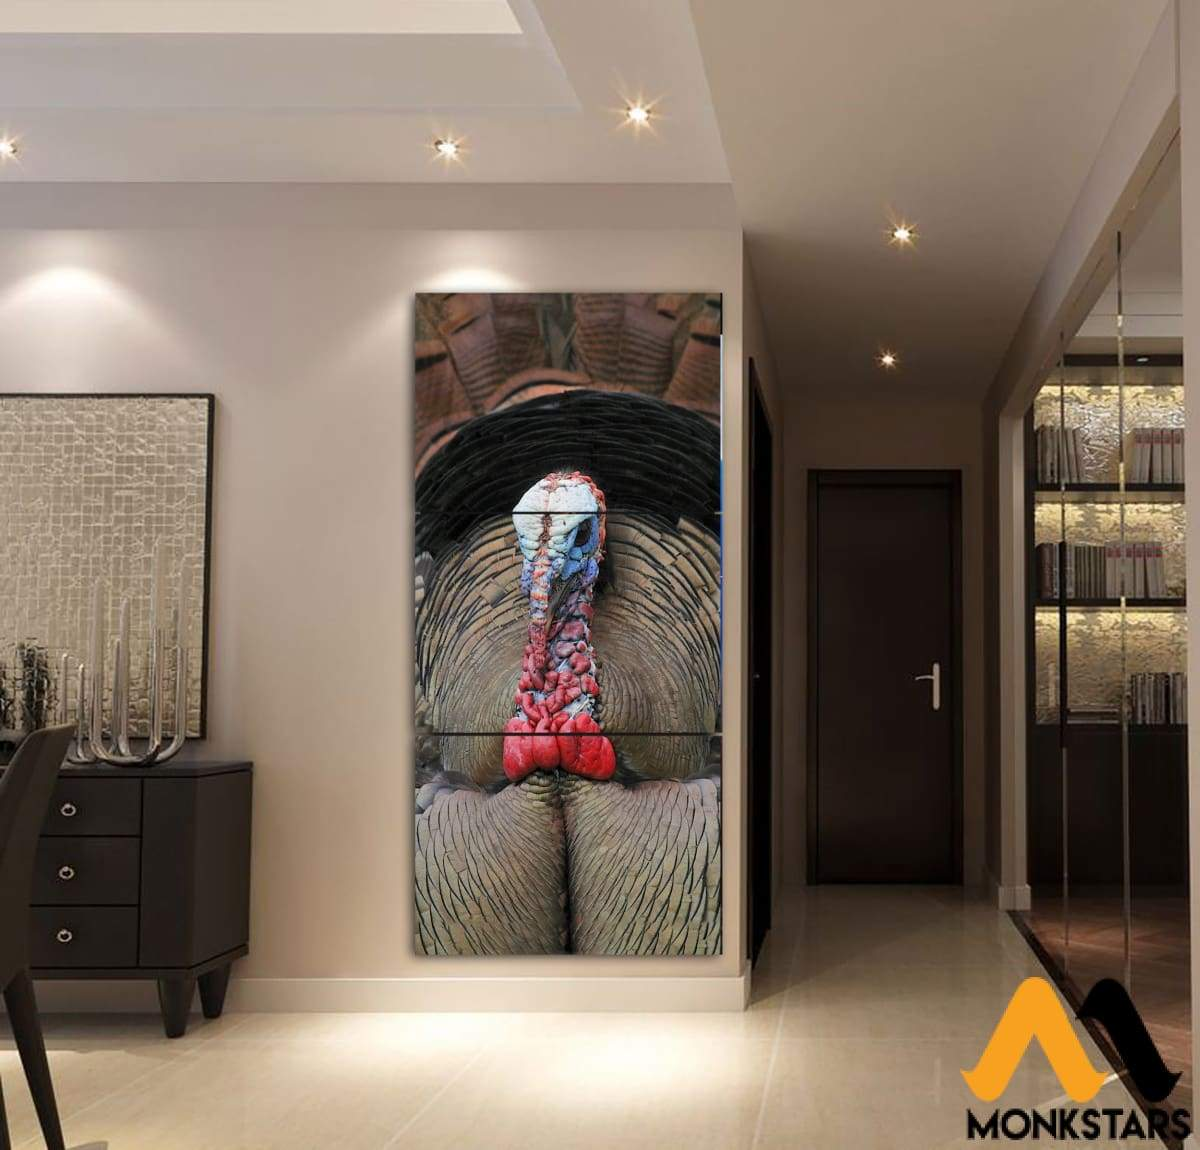 3-Piece Turkey Printed Canvas Wall Art Painting & Calligraphy